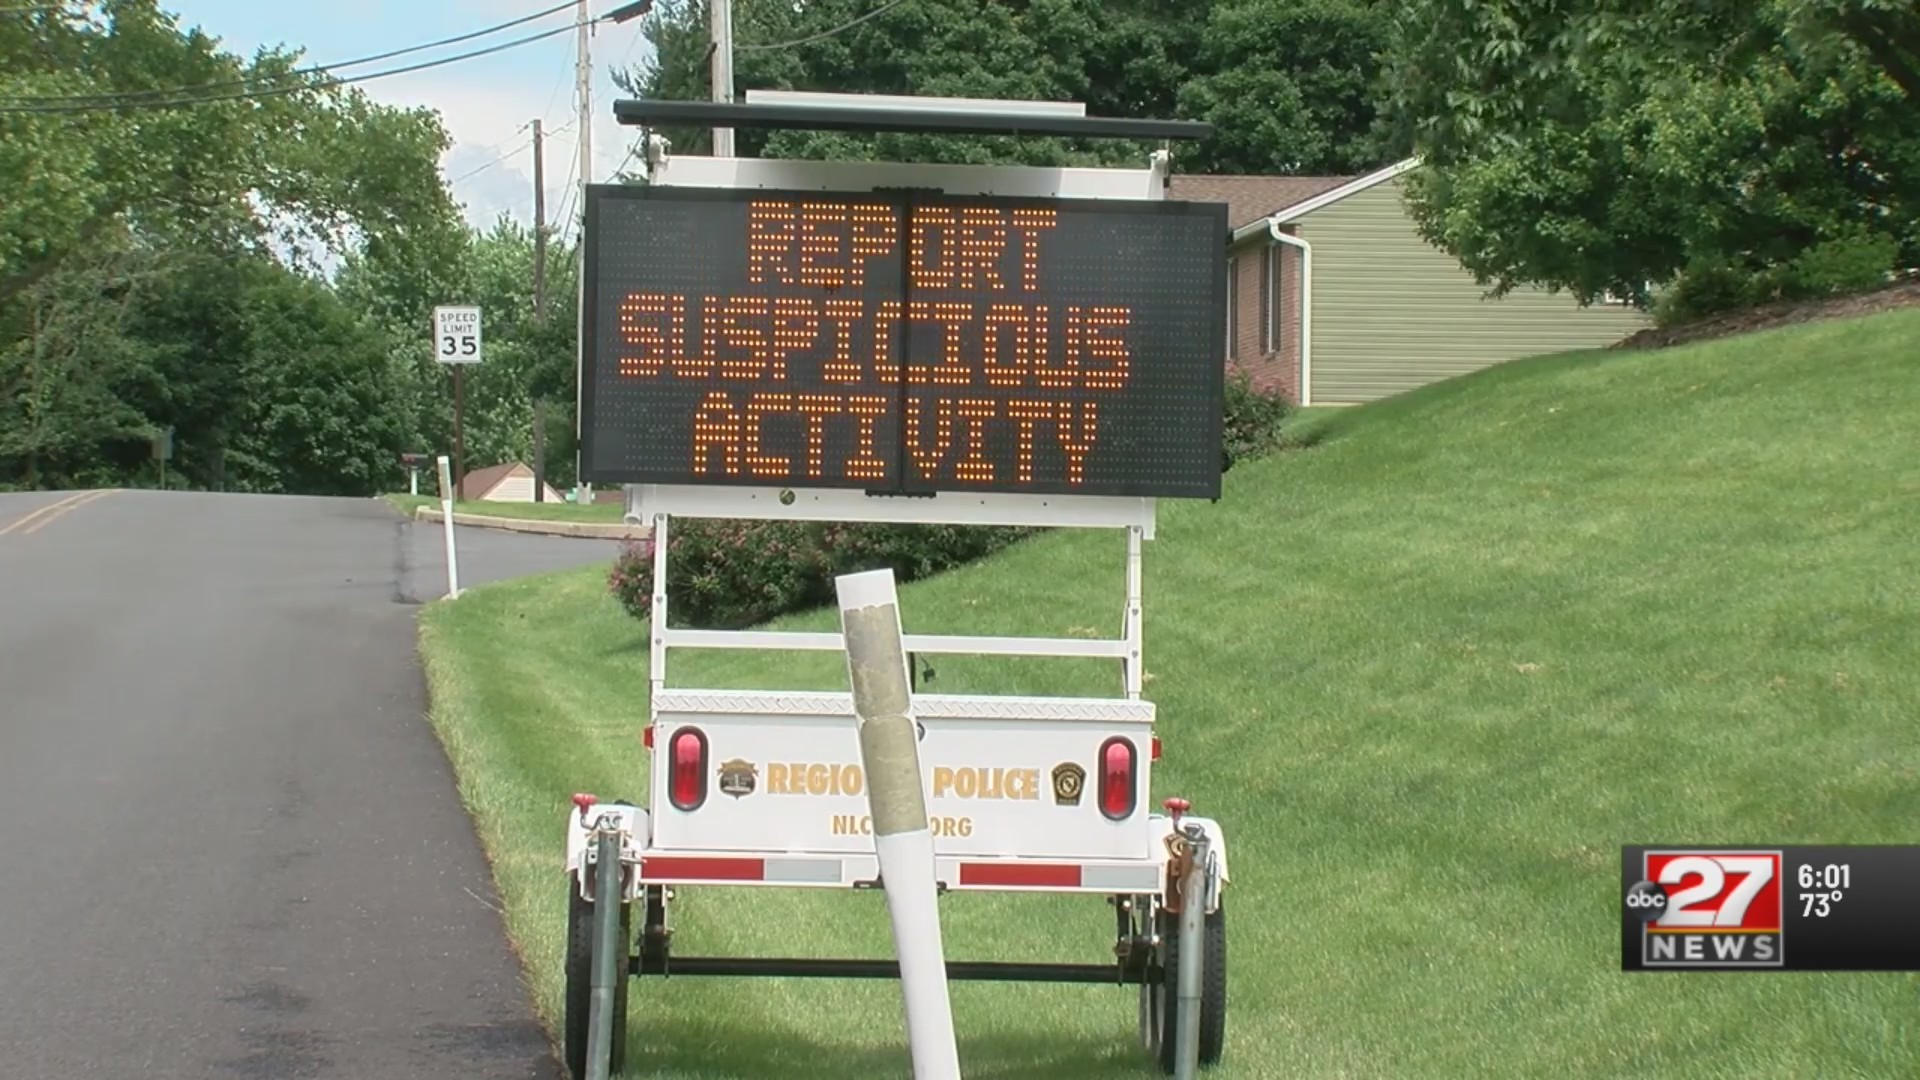 Police install warning sings after break-ins, vandalism